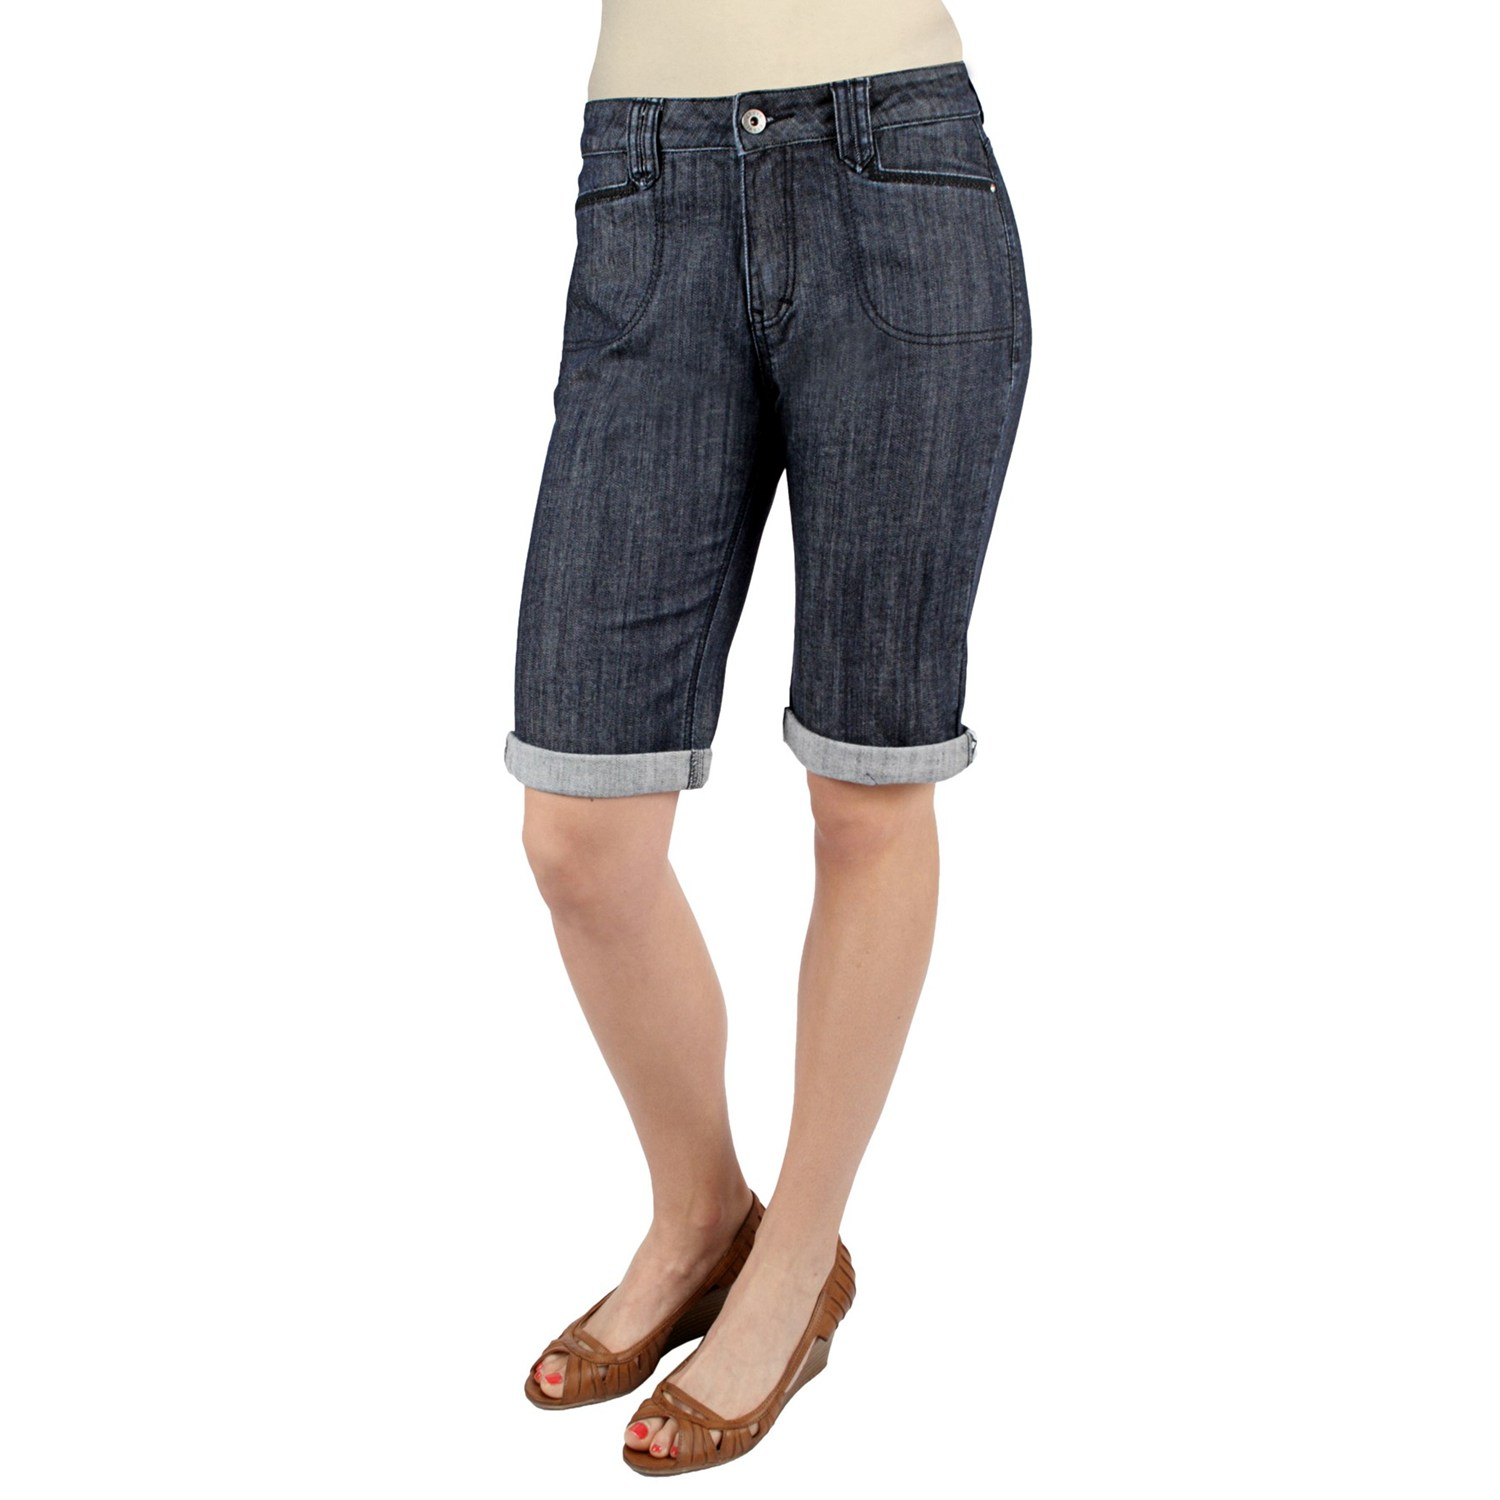 Buy New Bermuda Shorts for Women at Macy's. Shop for Womens Shorts Online at vanduload.tk Free Shipping Available!